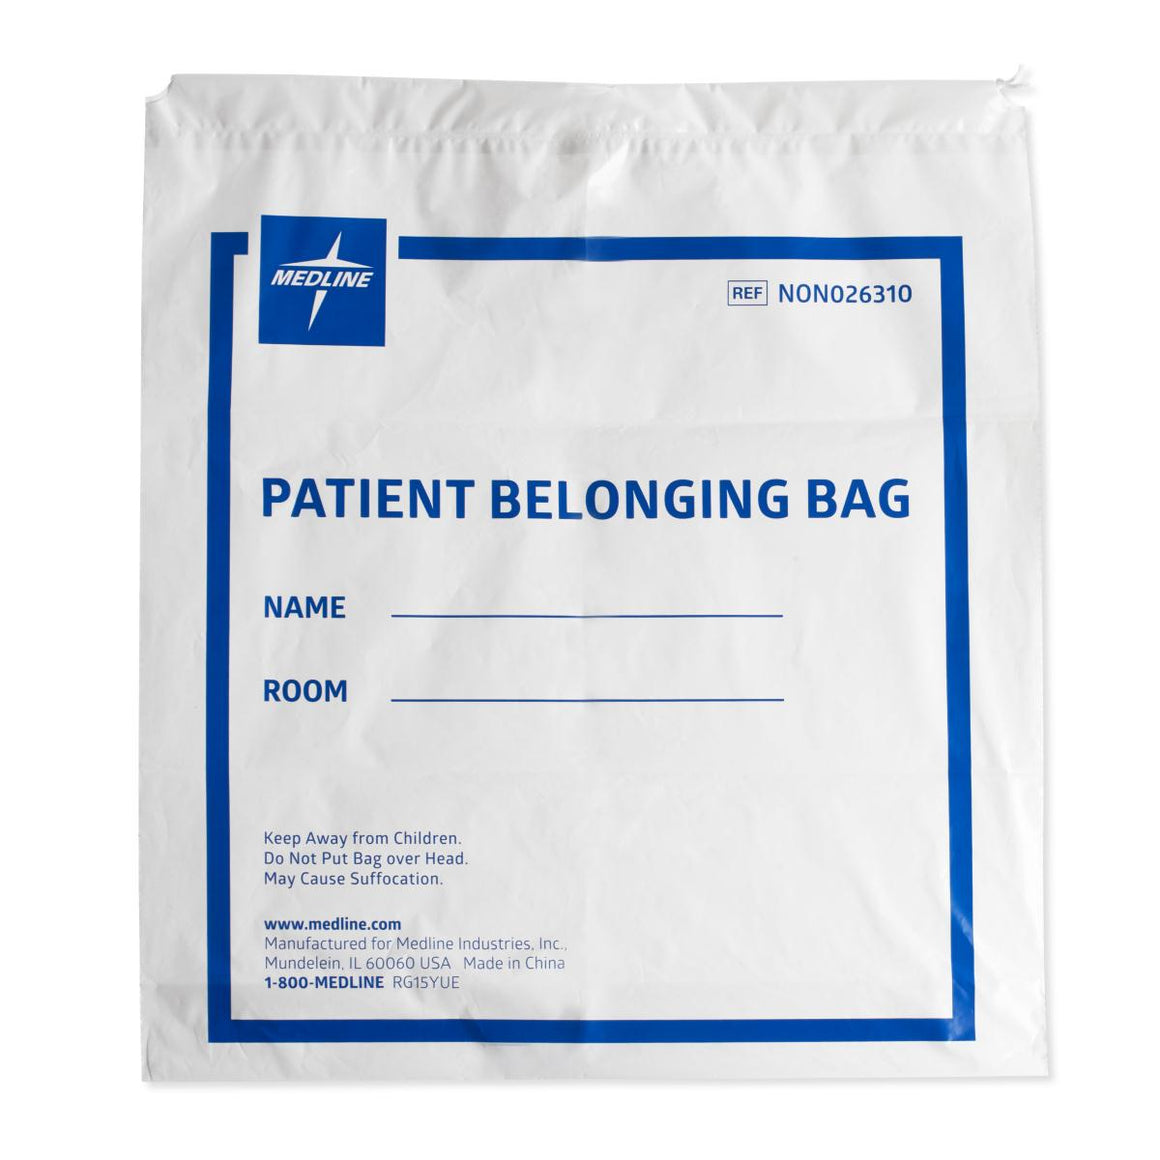 Drawstring Patient Belongings Bags,White, Case of 250